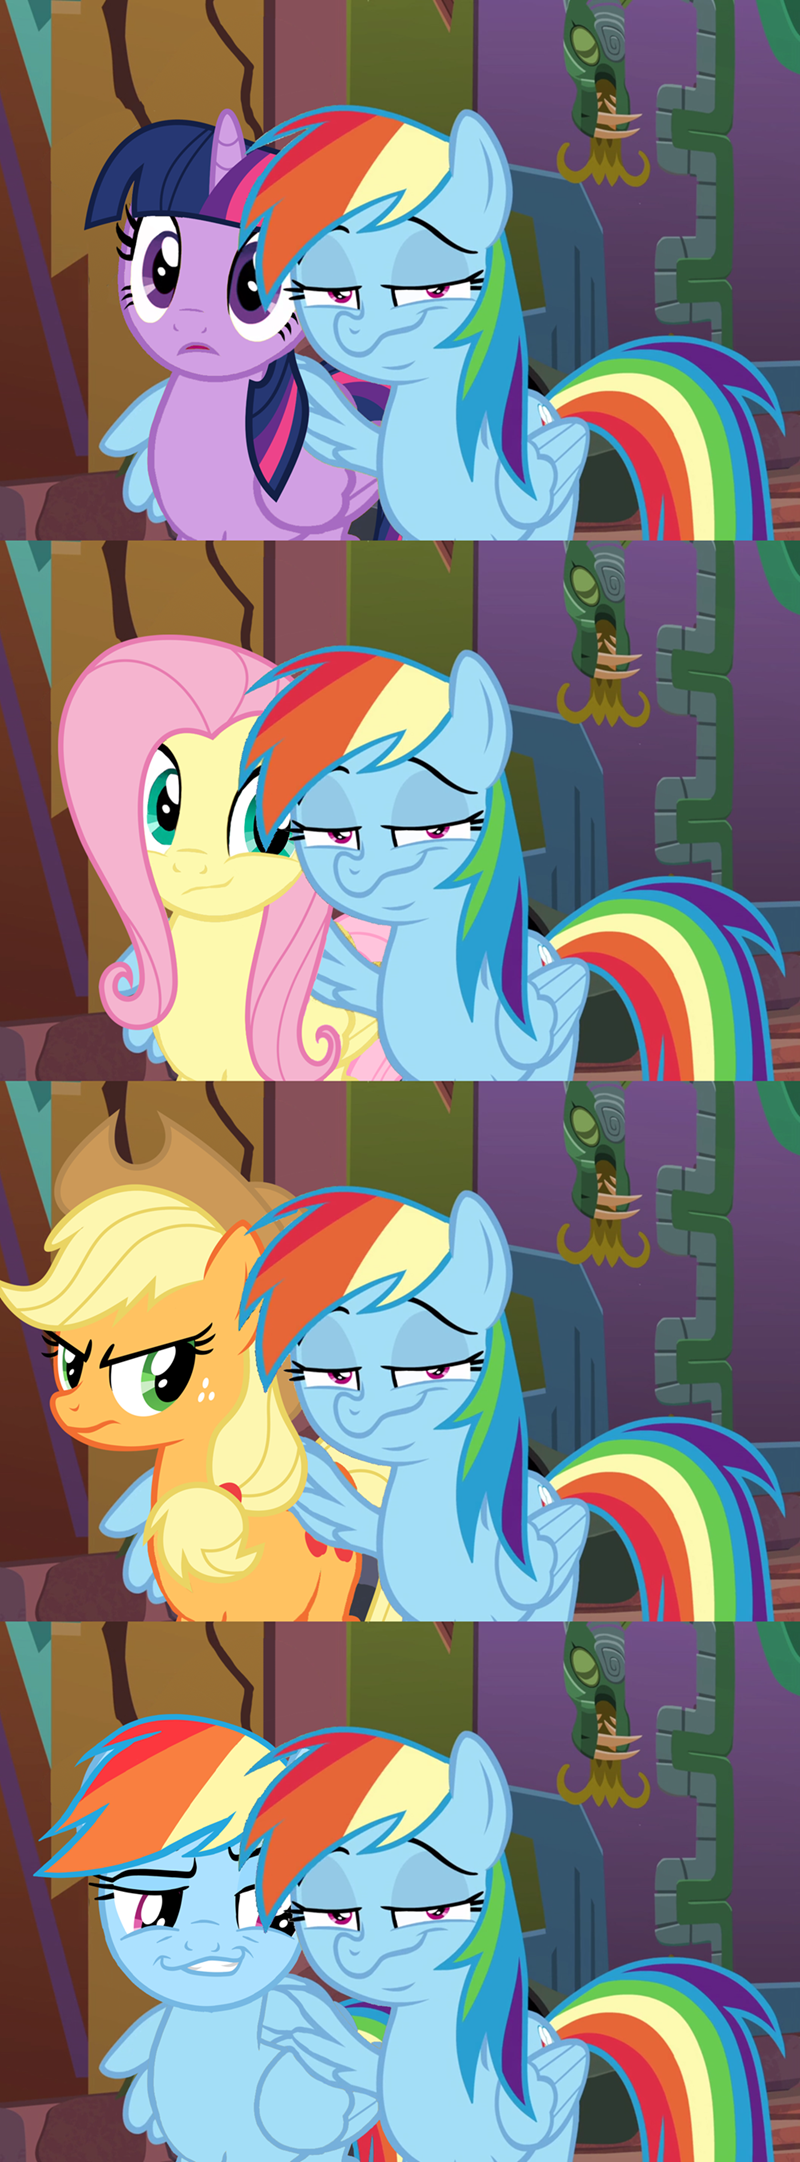 applejack,twilight sparkle,stranger than fan fiction,fluttershy,rainbow dash